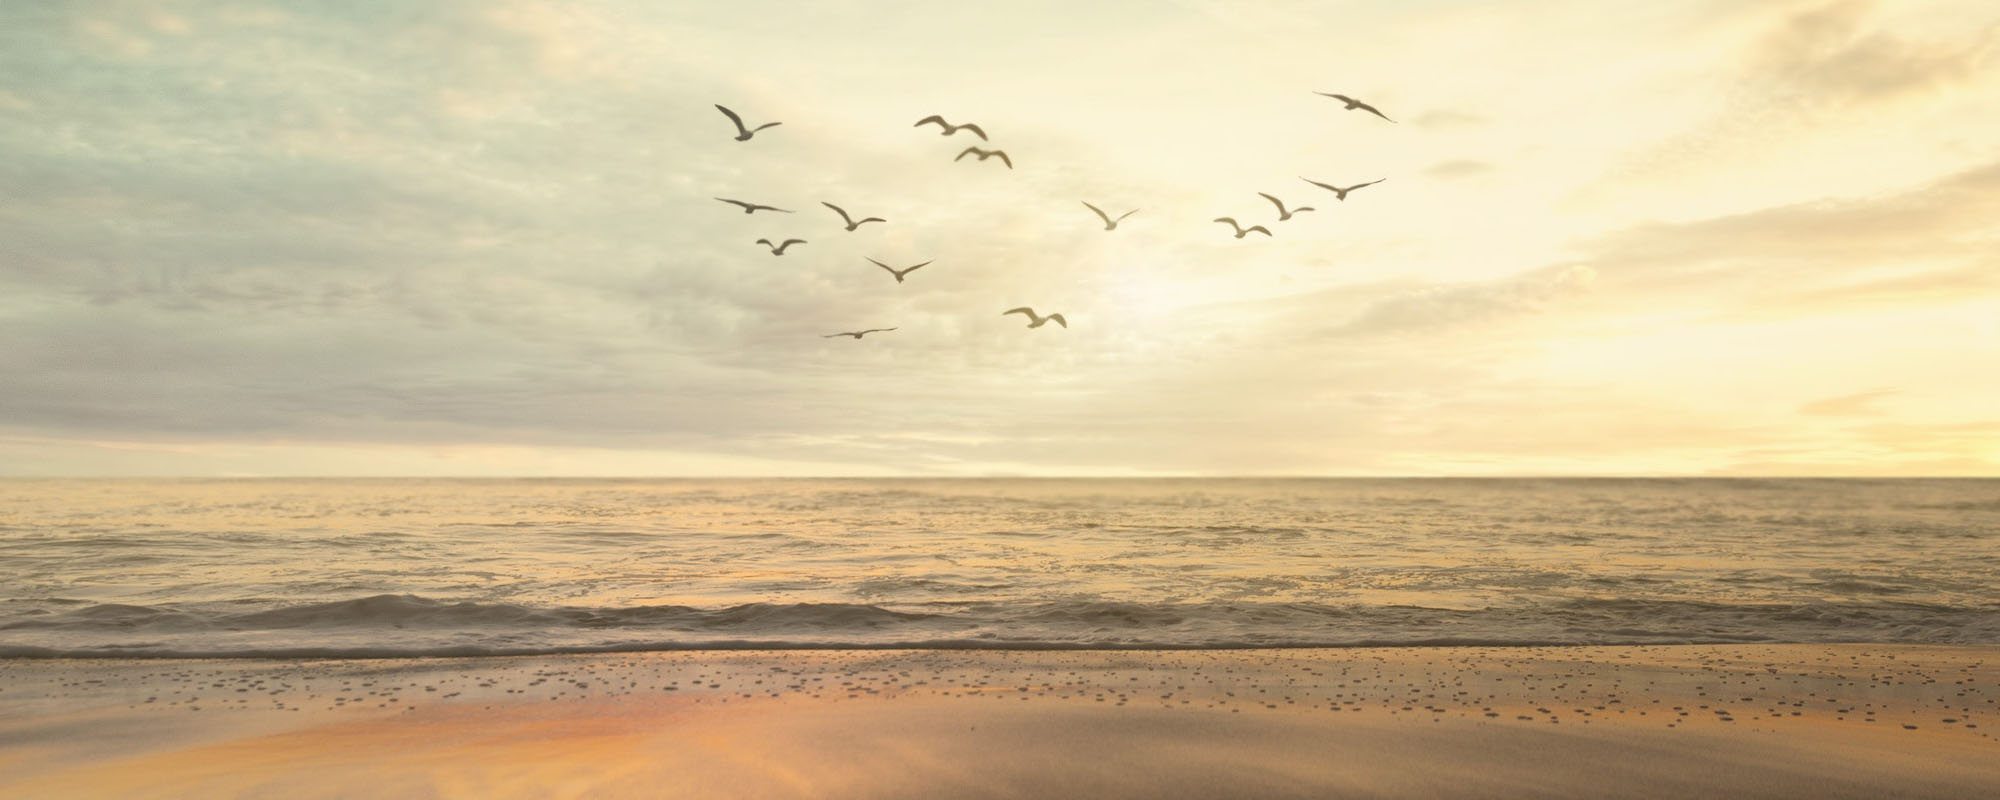 Birds flying over the ocean